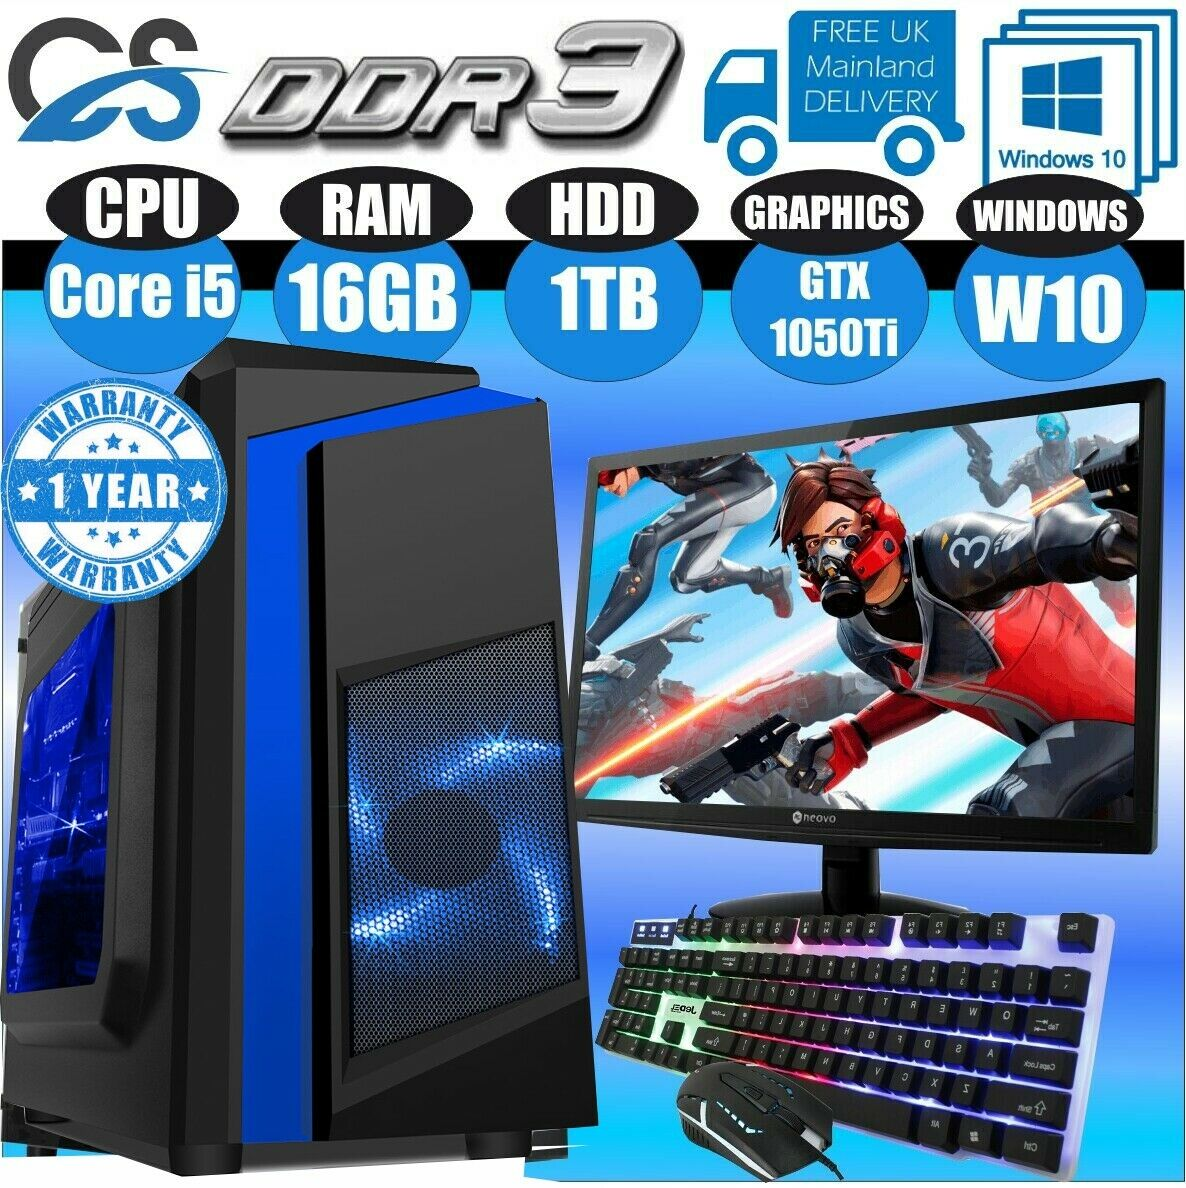 Computer Games - Fast Gaming PC Computer Bundle Intel Quad Core i5 16GB 1TB Win10 4GB GTX1050Ti